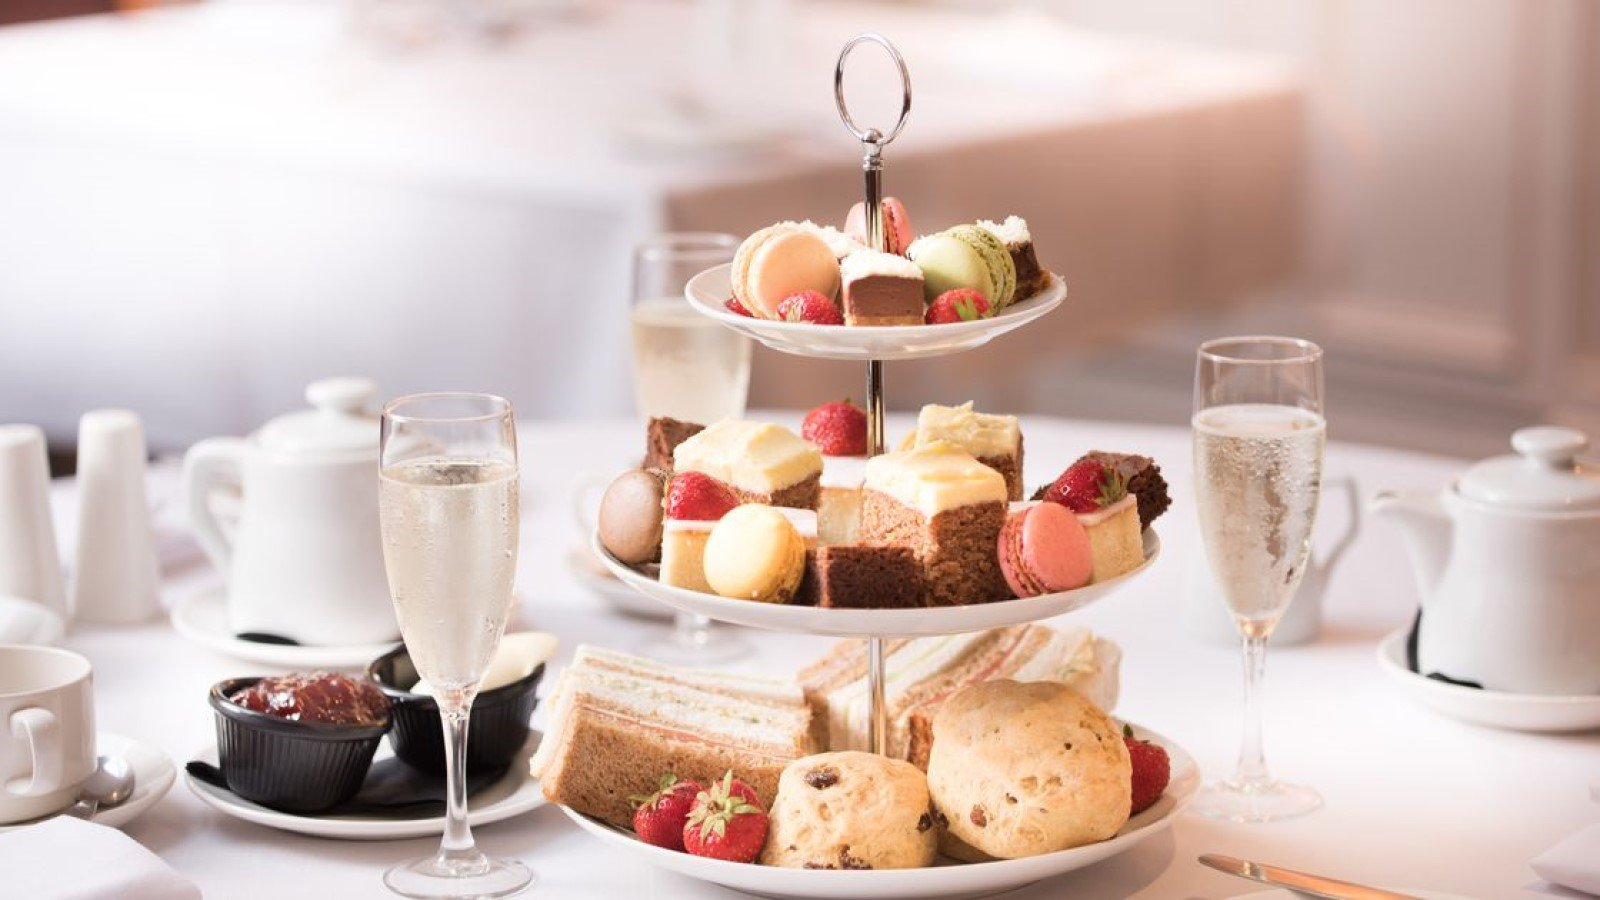 Indulgent Country House Afternoon Teas near Oxford